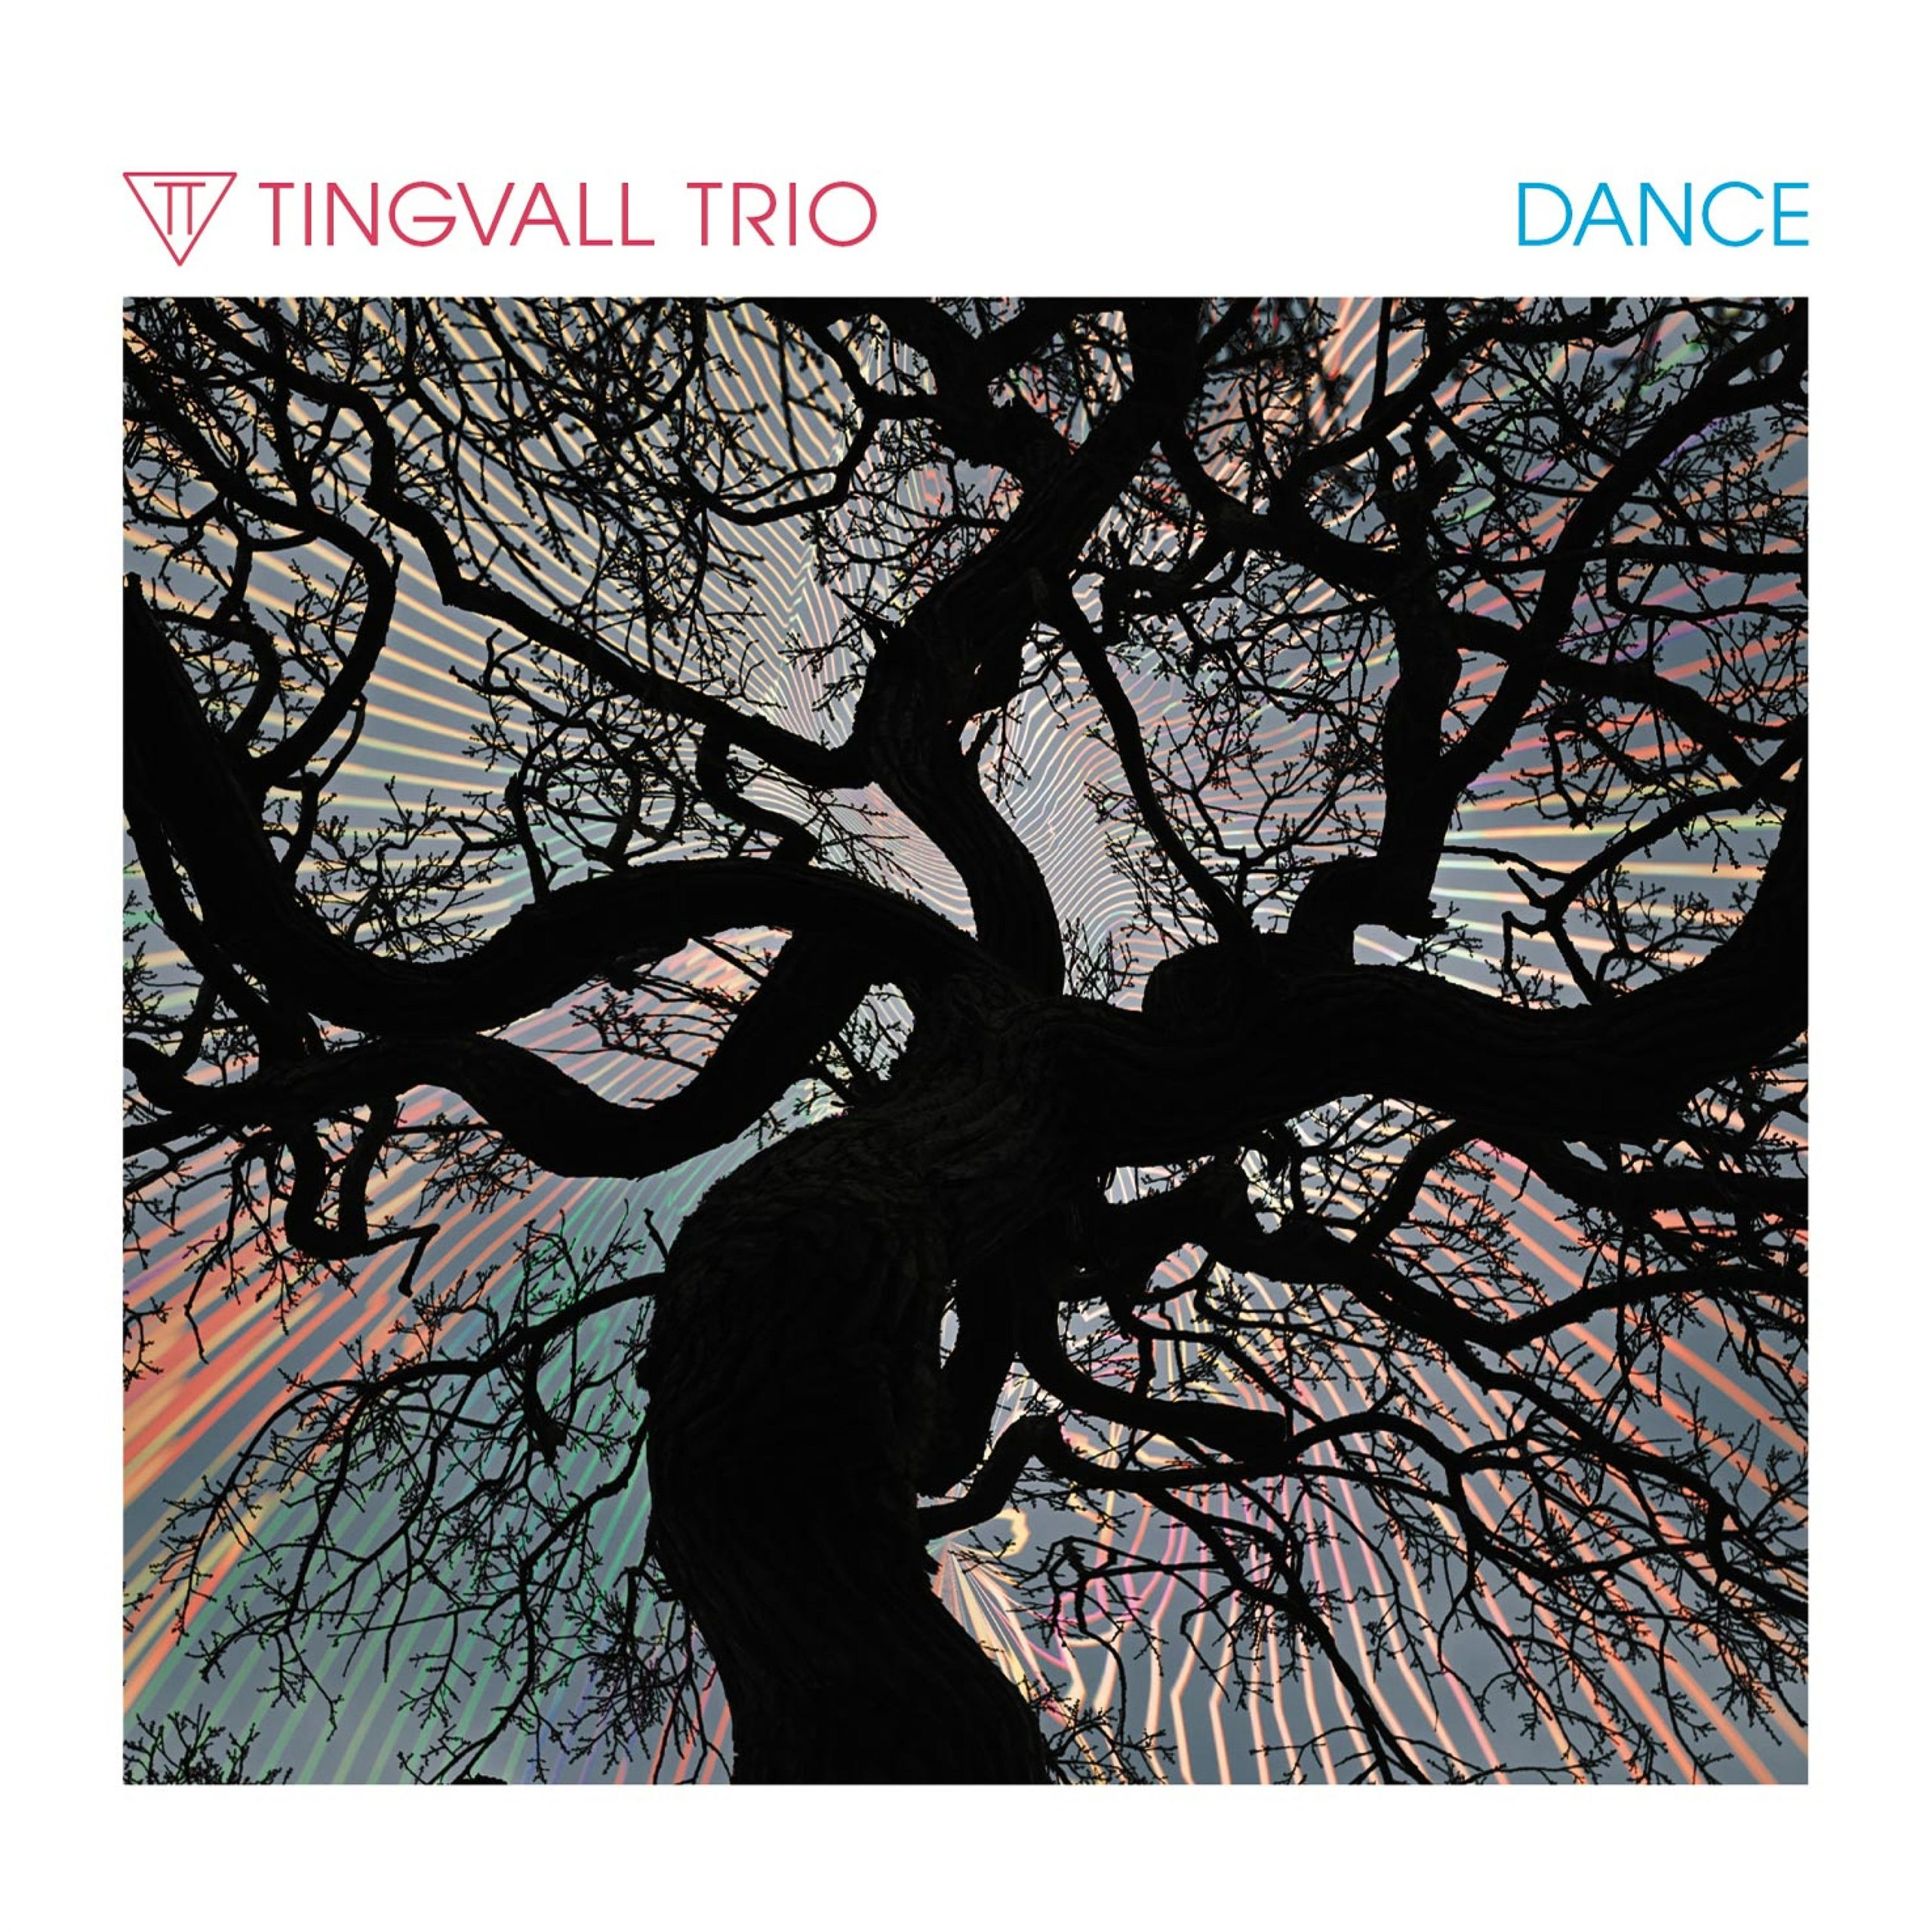 Tingvall Trio mit neuer Single